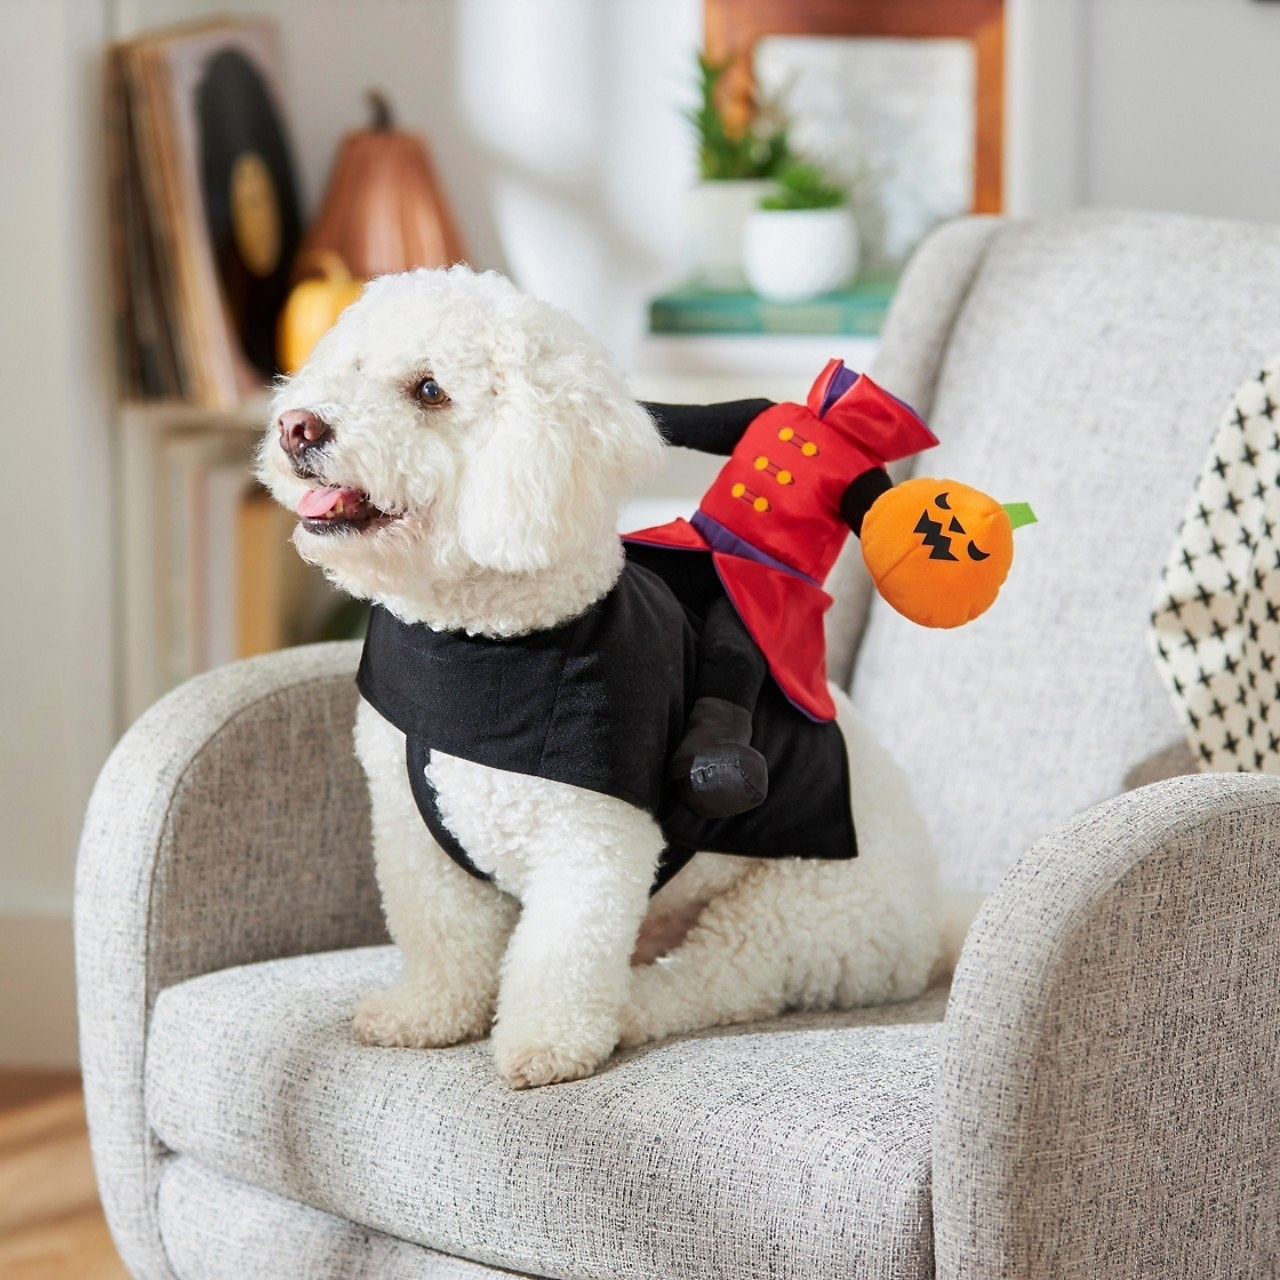 a small dog wearing a black vest to showcase a headless horseman rider on its back